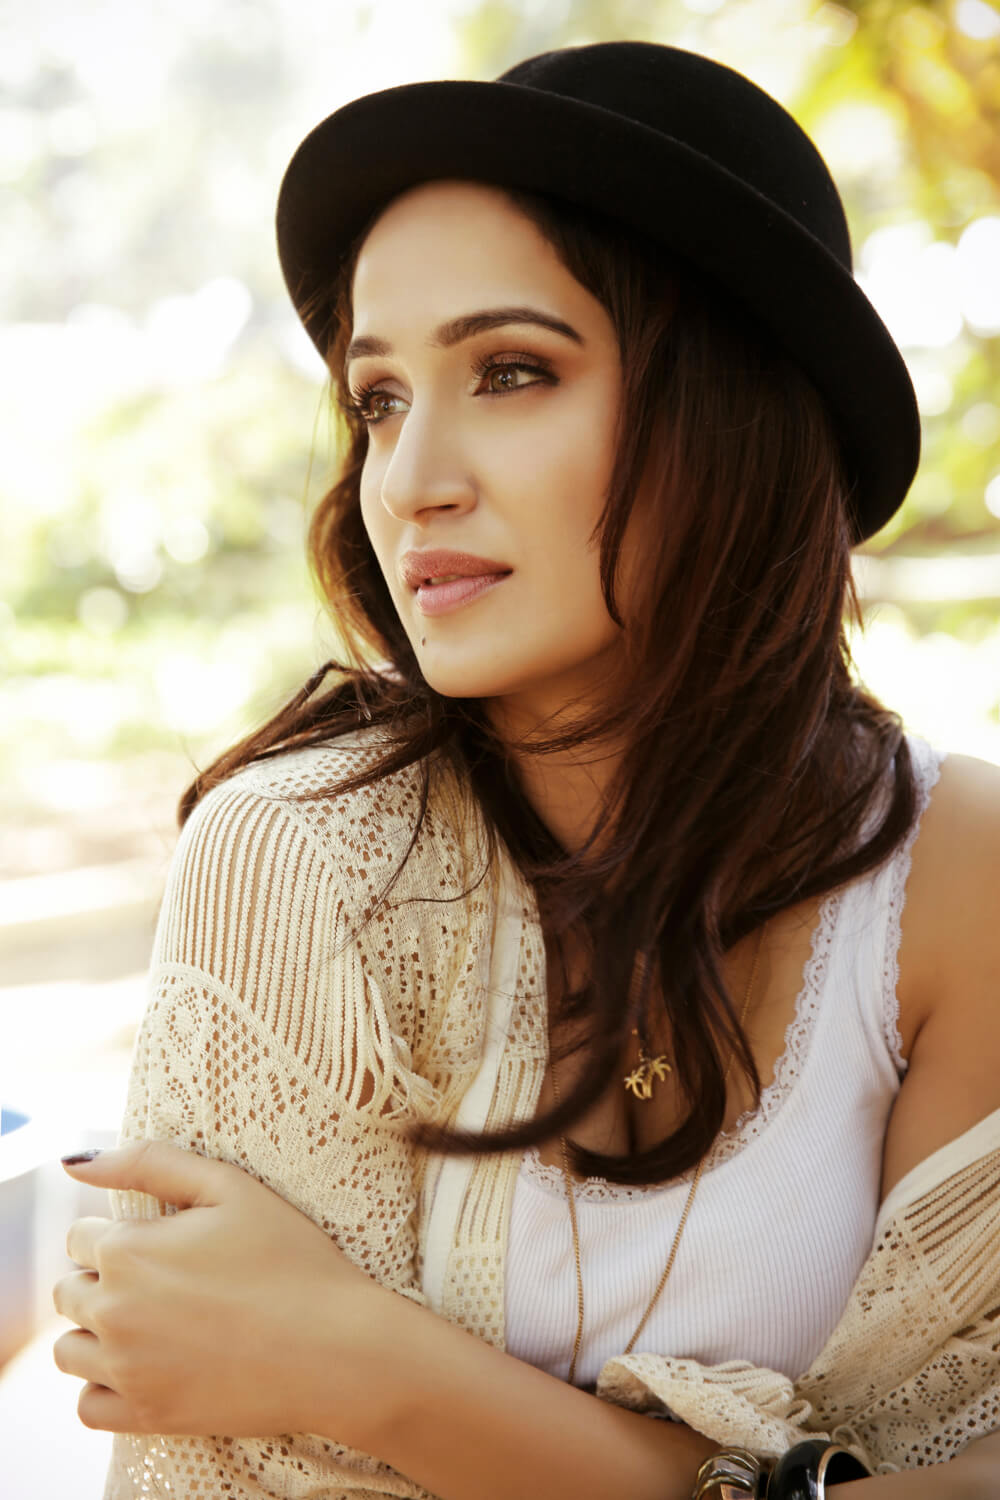 Sagarika Ghatge Age, Husband, Movie, Father, Biography, Height, Images(photo), Family, Net Worth, Birthday, Marriage, Education, Instagram, Twitter, Wiki, Facebook, Imdb (3) (1)